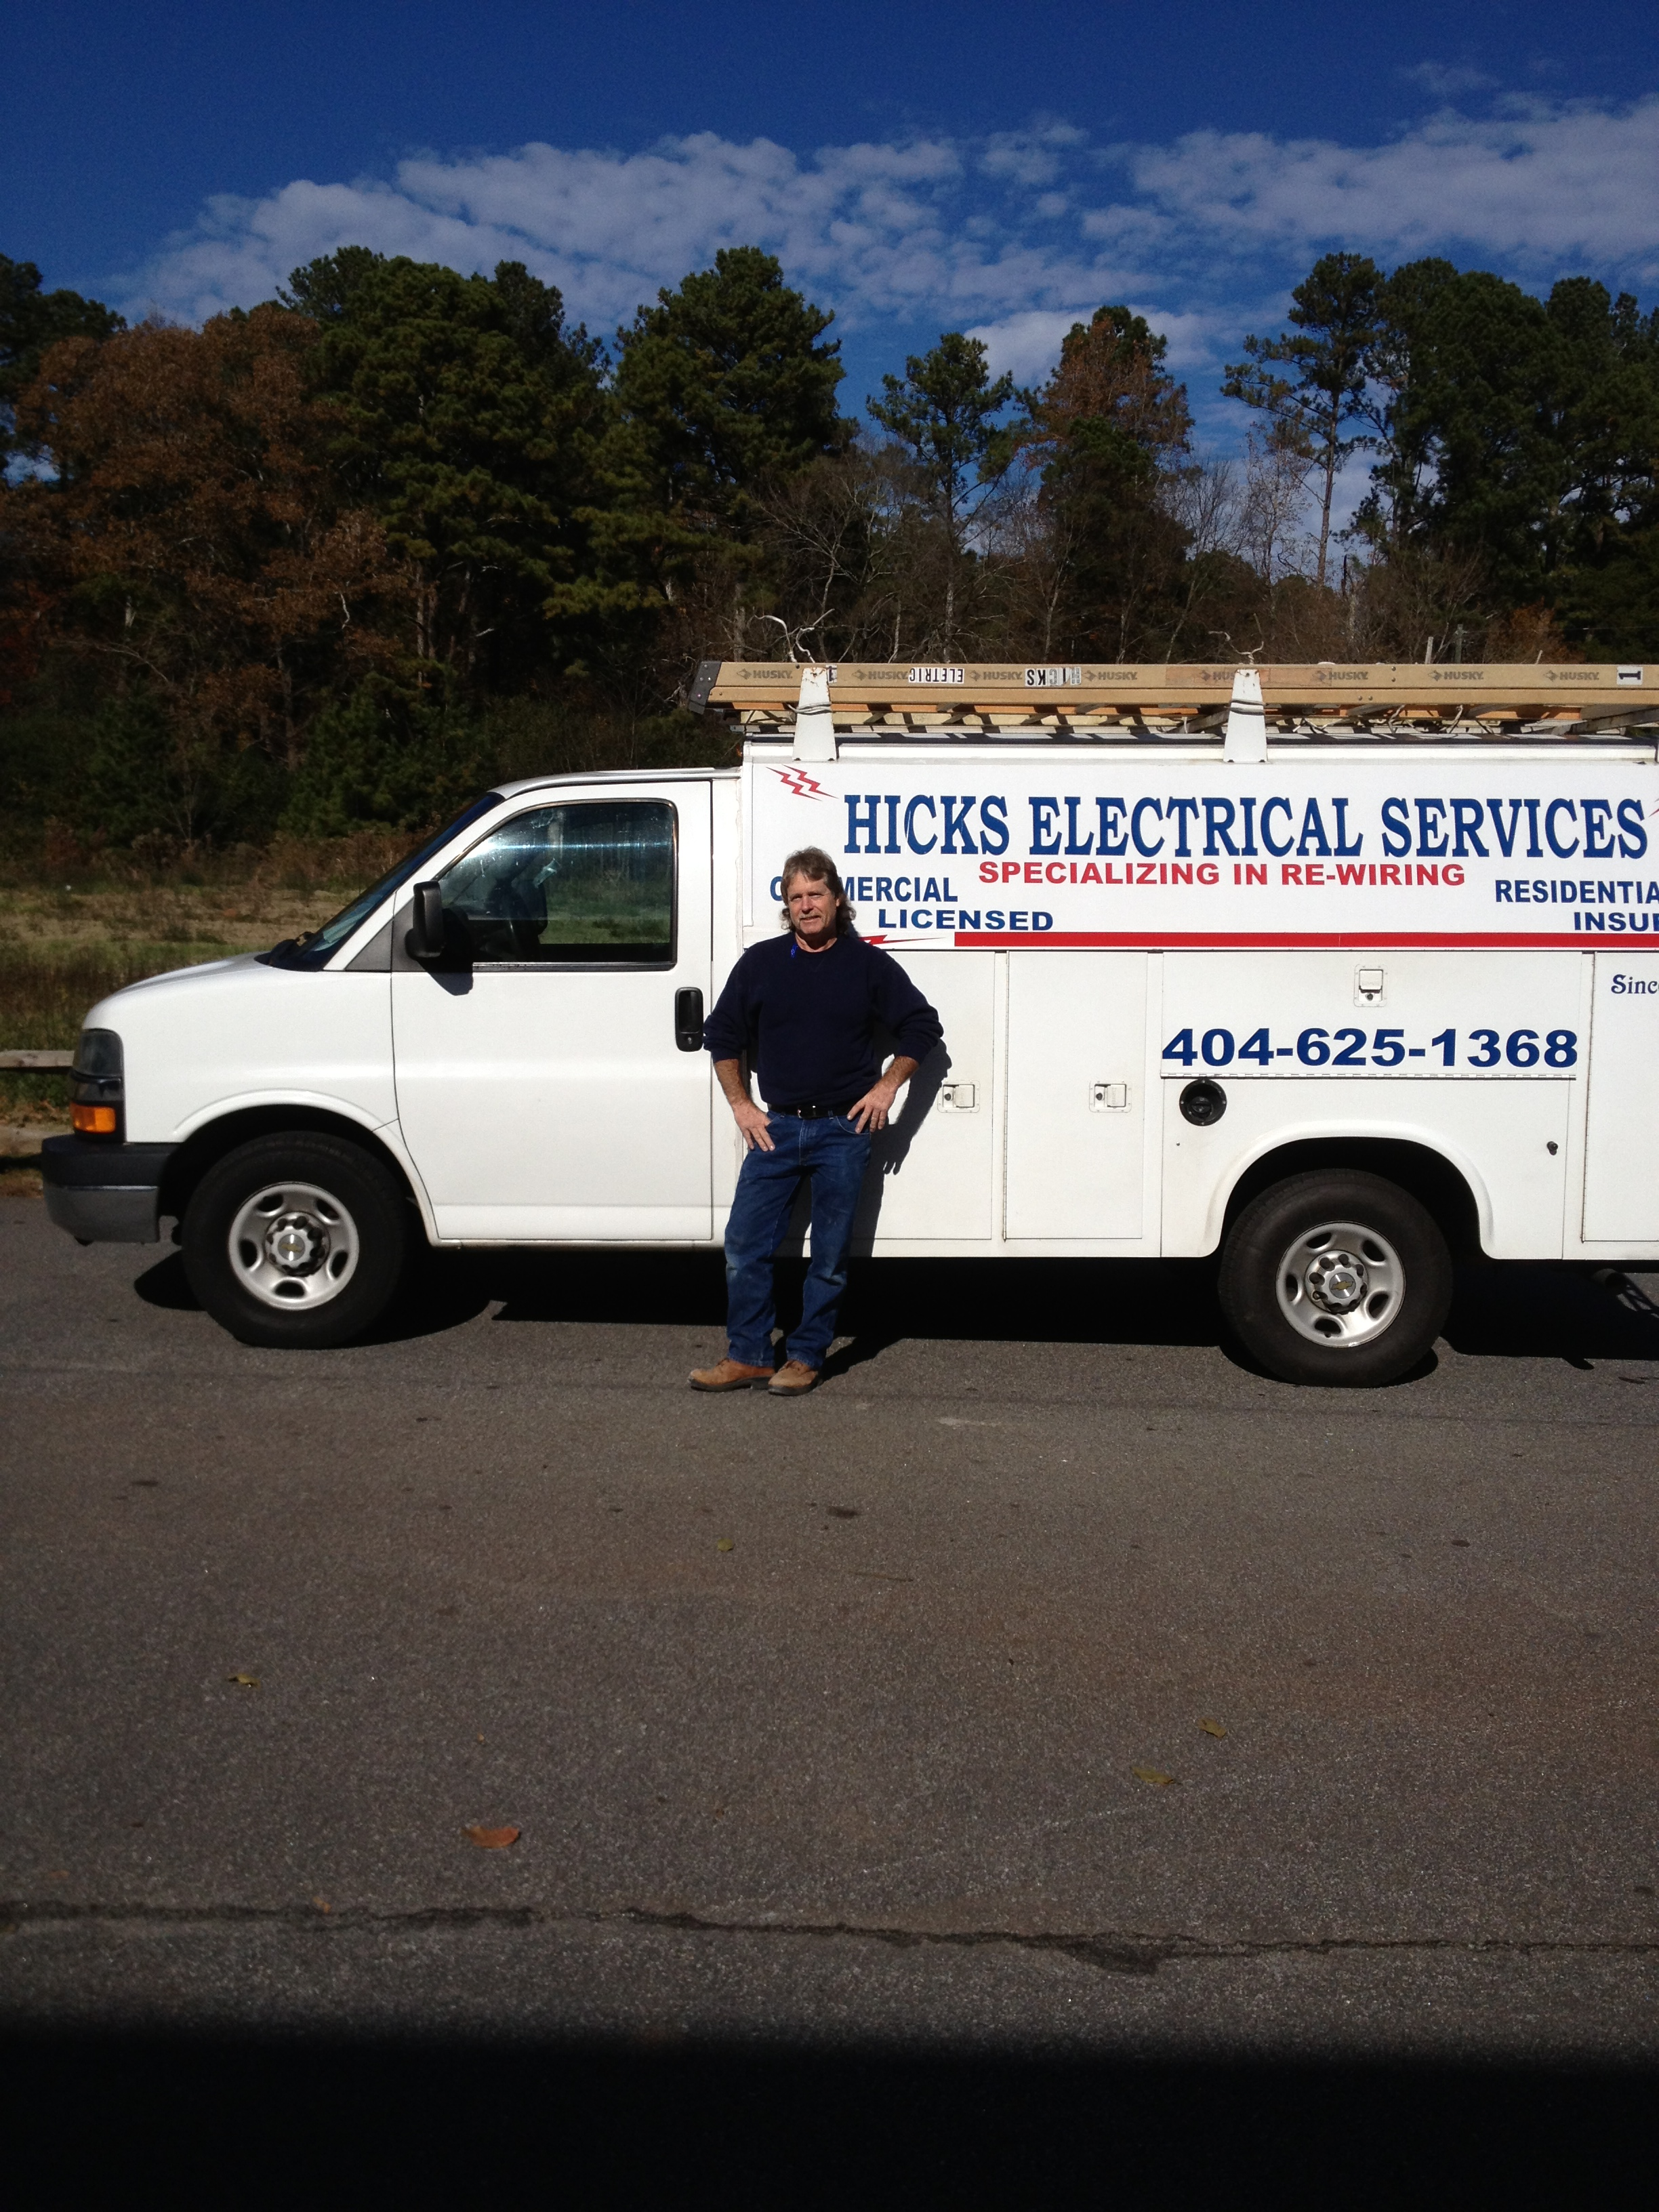 Services Provided By Hicks Electrical Service Commercial Motor Wiring